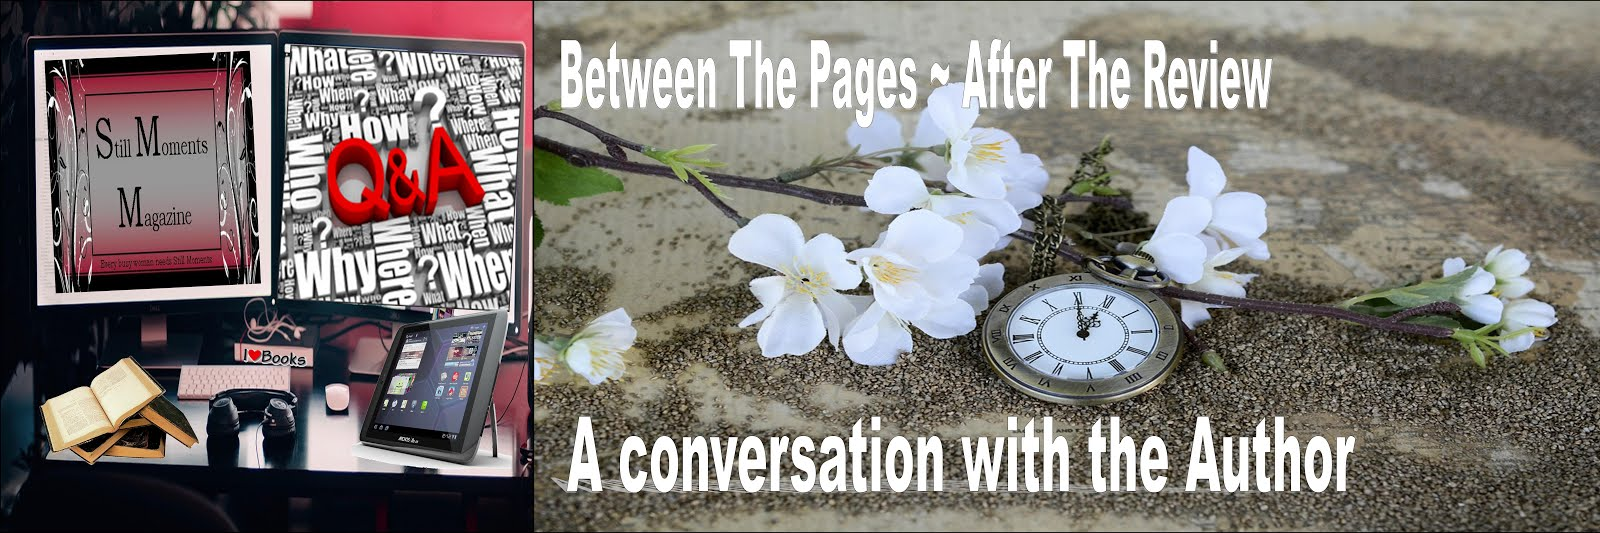 Between The Pages ~ After The Review